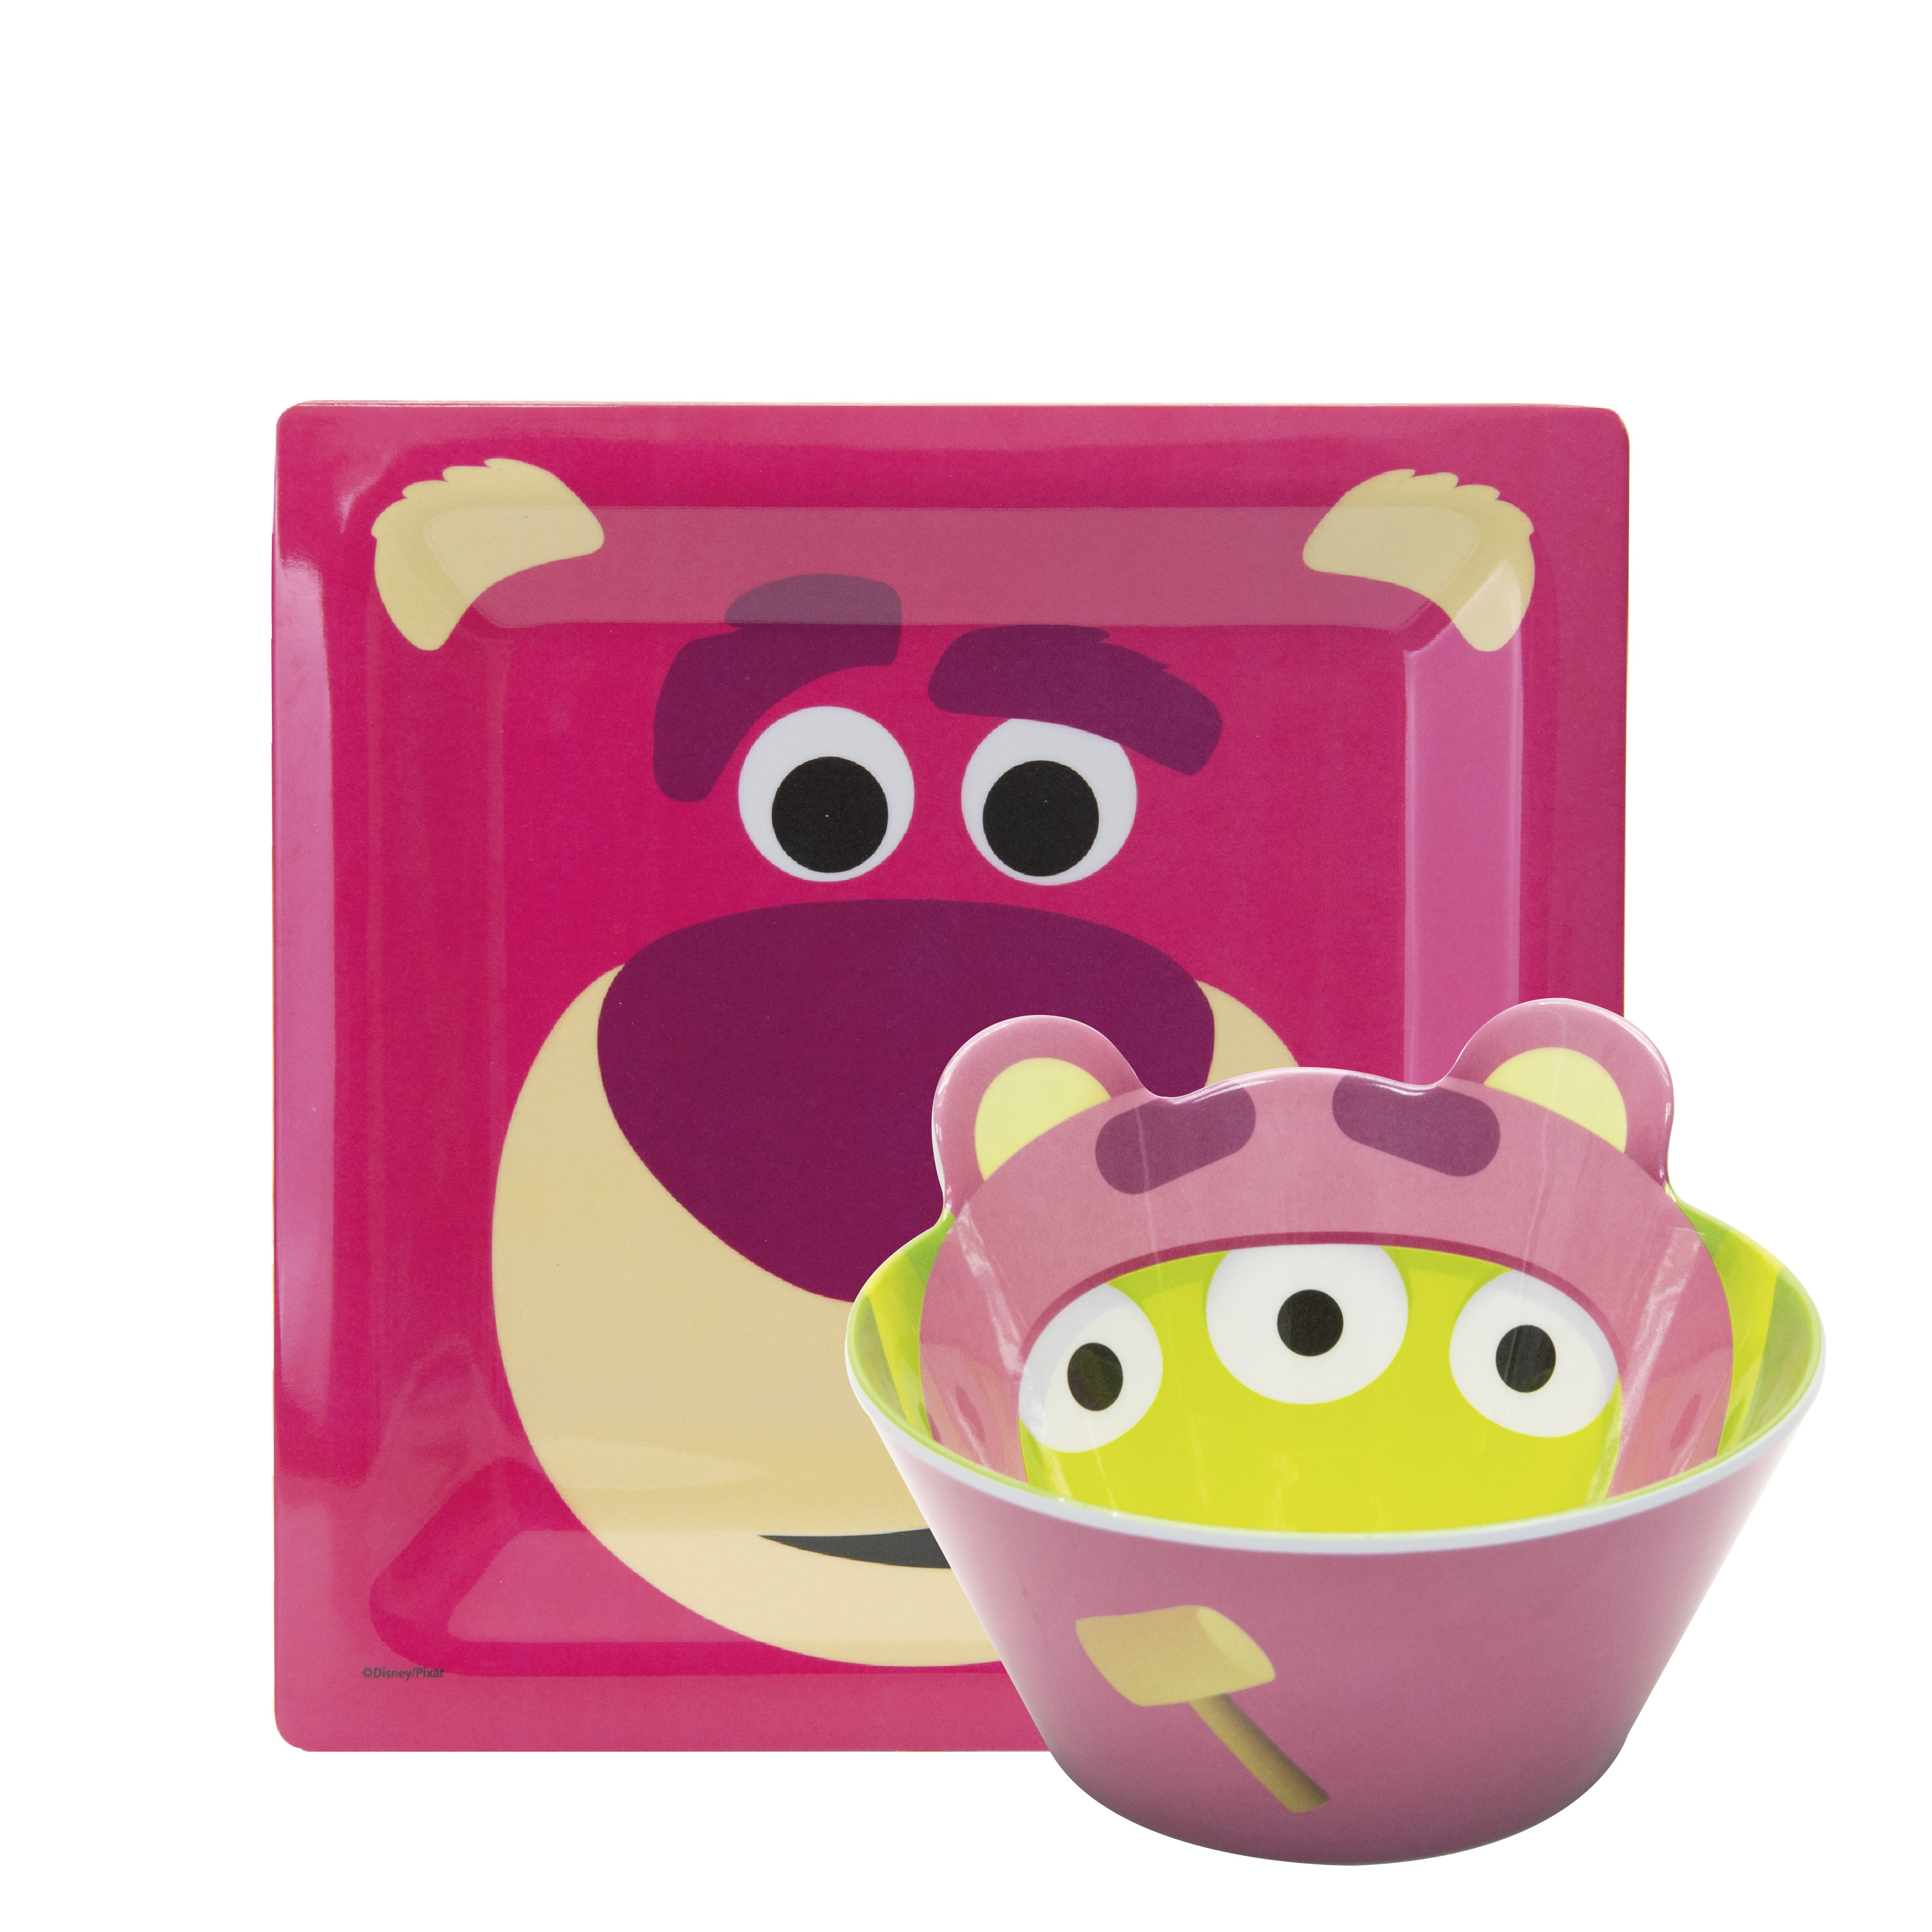 Disney and Pixar Toy Story 4 Plate and Bowl Set, Lotso, 2-piece set slideshow image 2